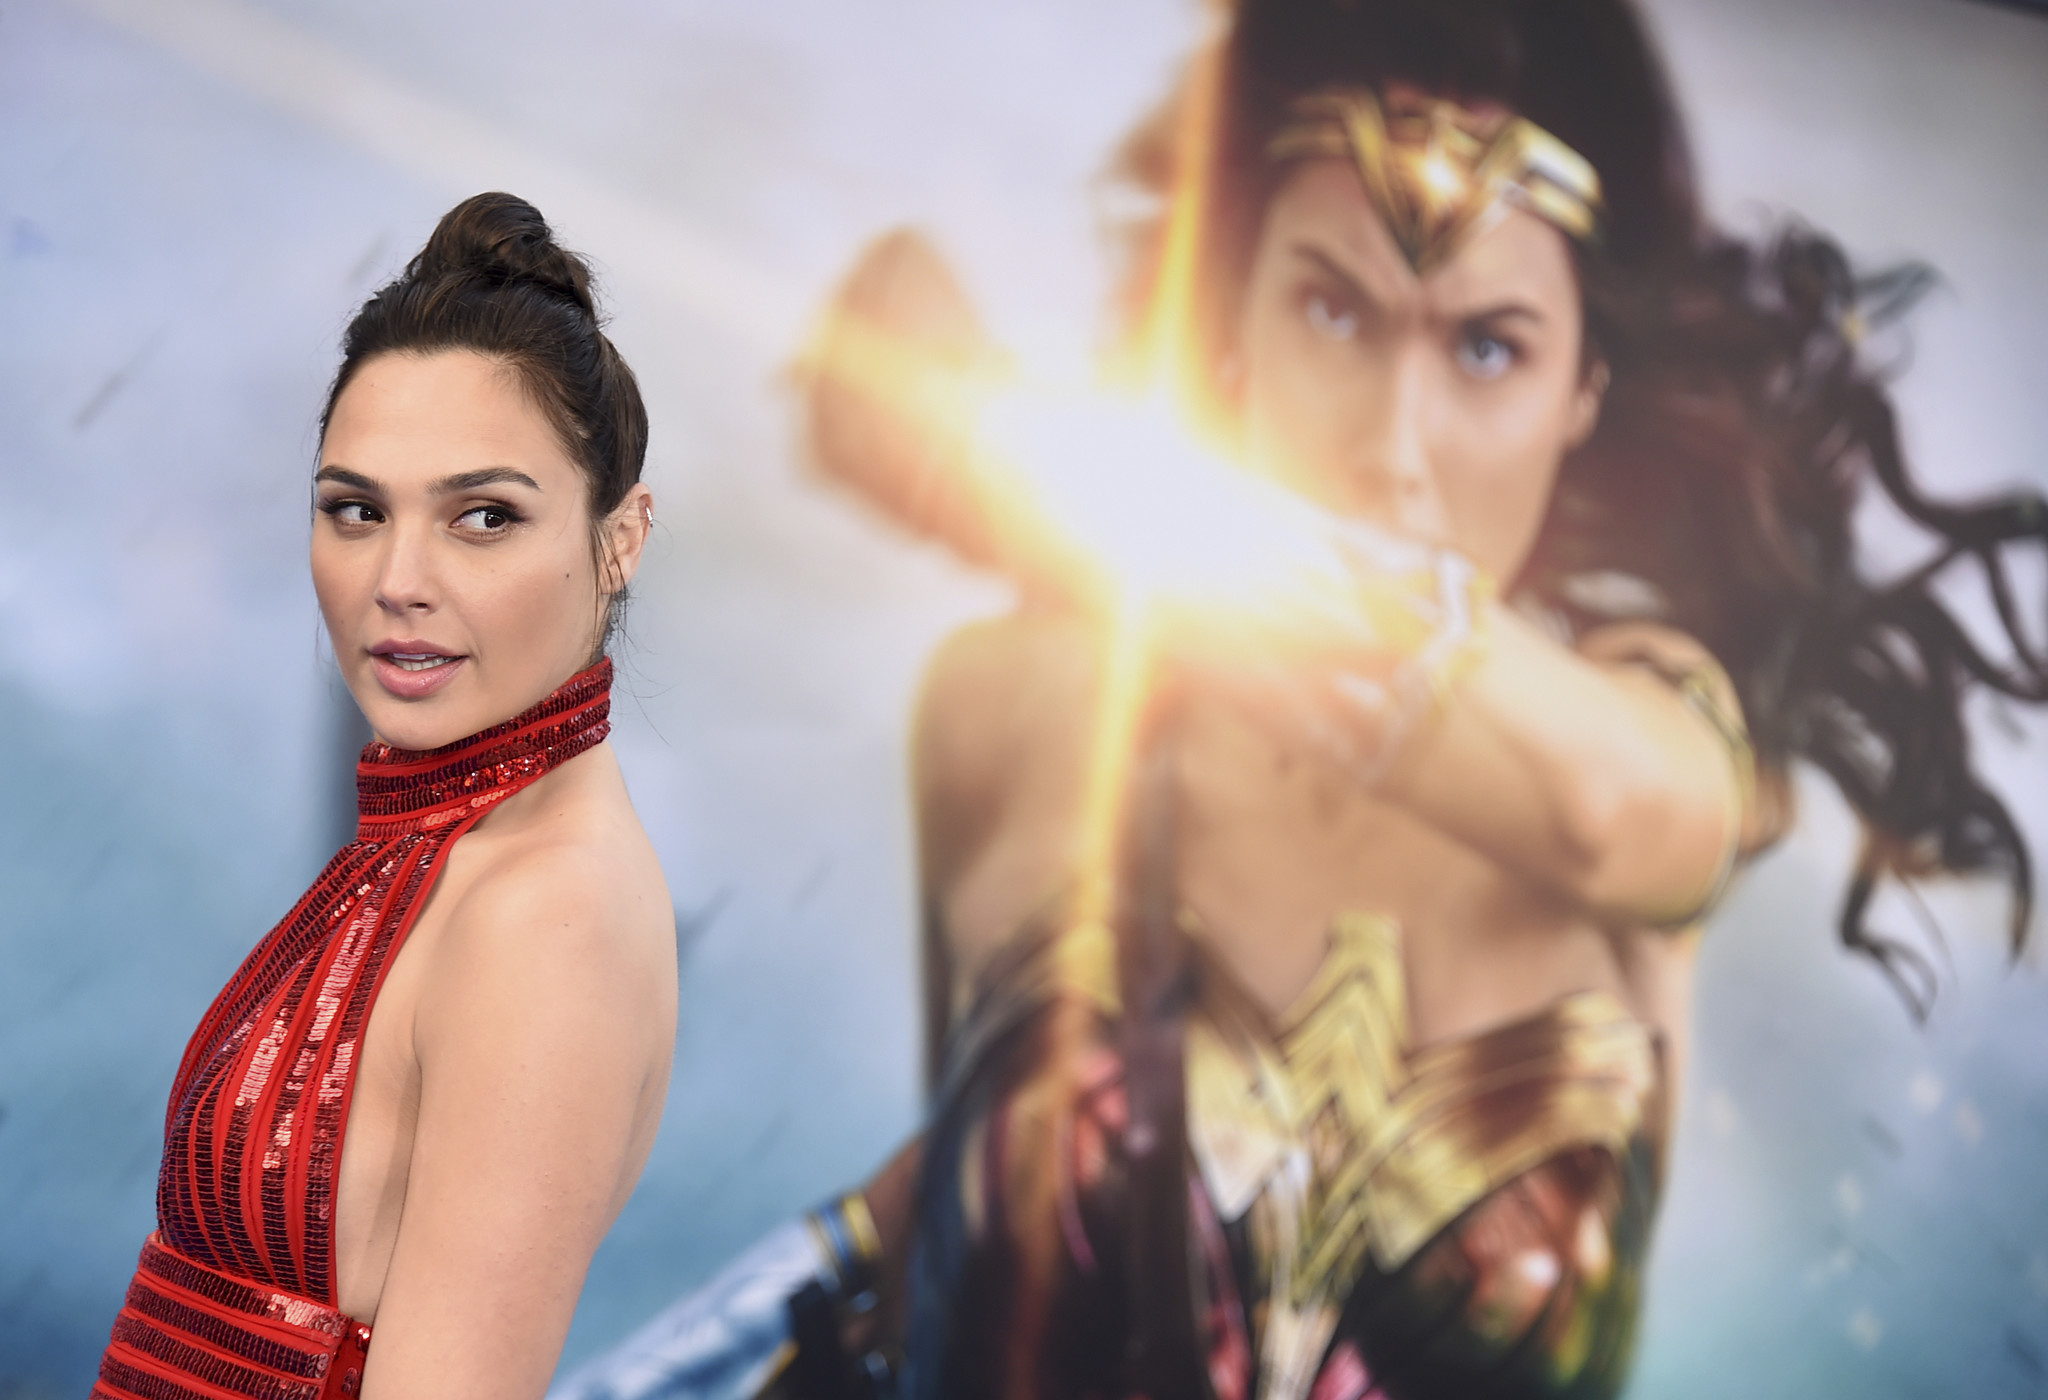 Gal Gadot paid the same as Henry Cavill for superhero films